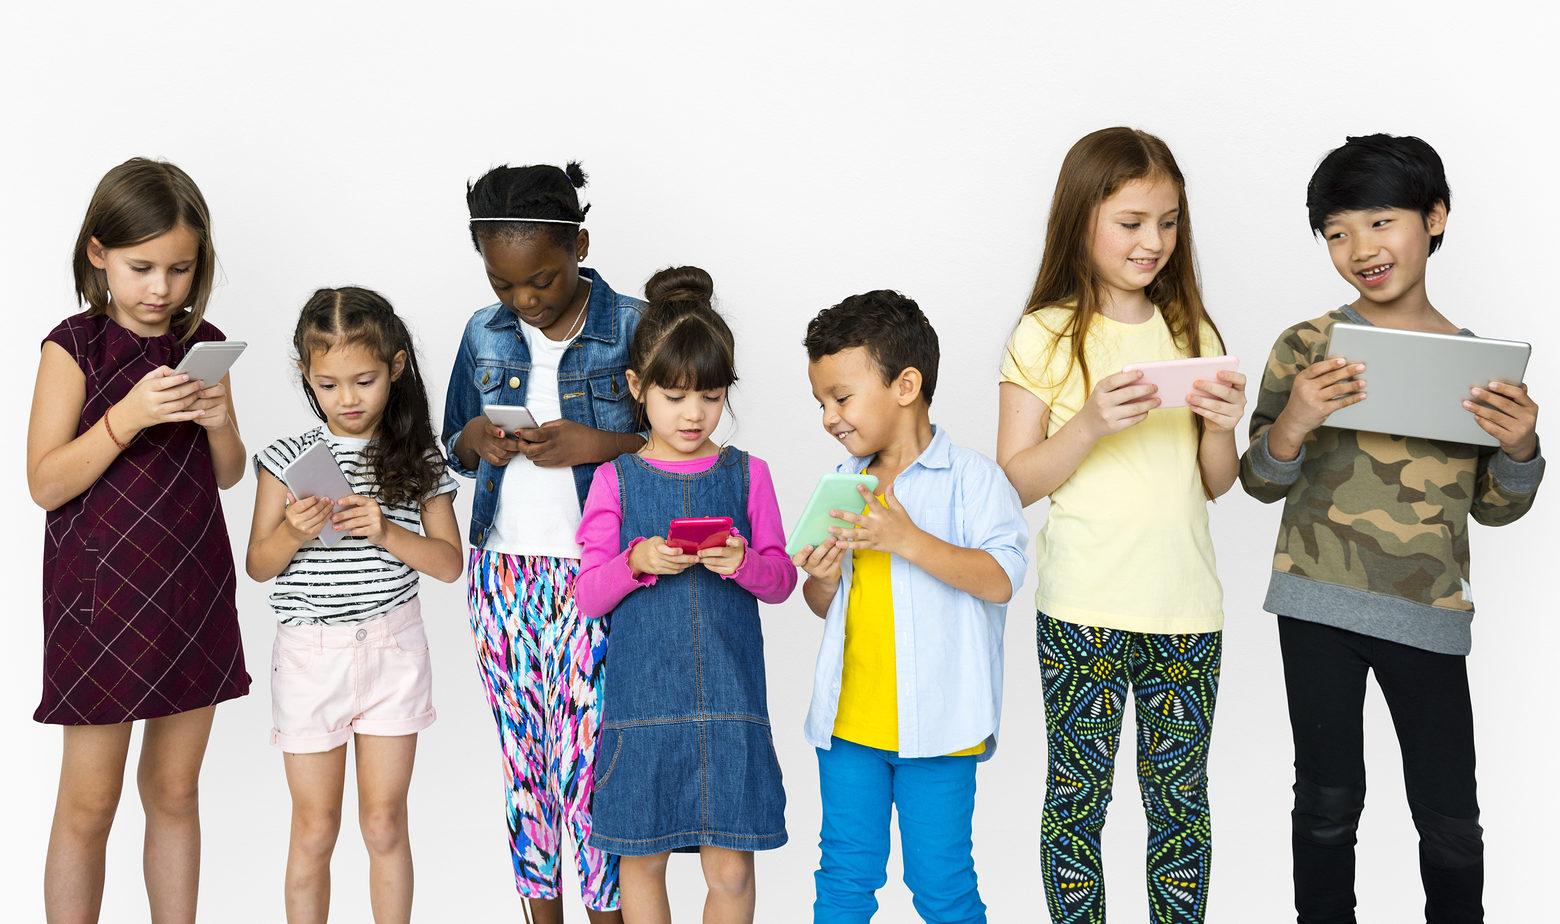 Group of Kids Using Digital Devices